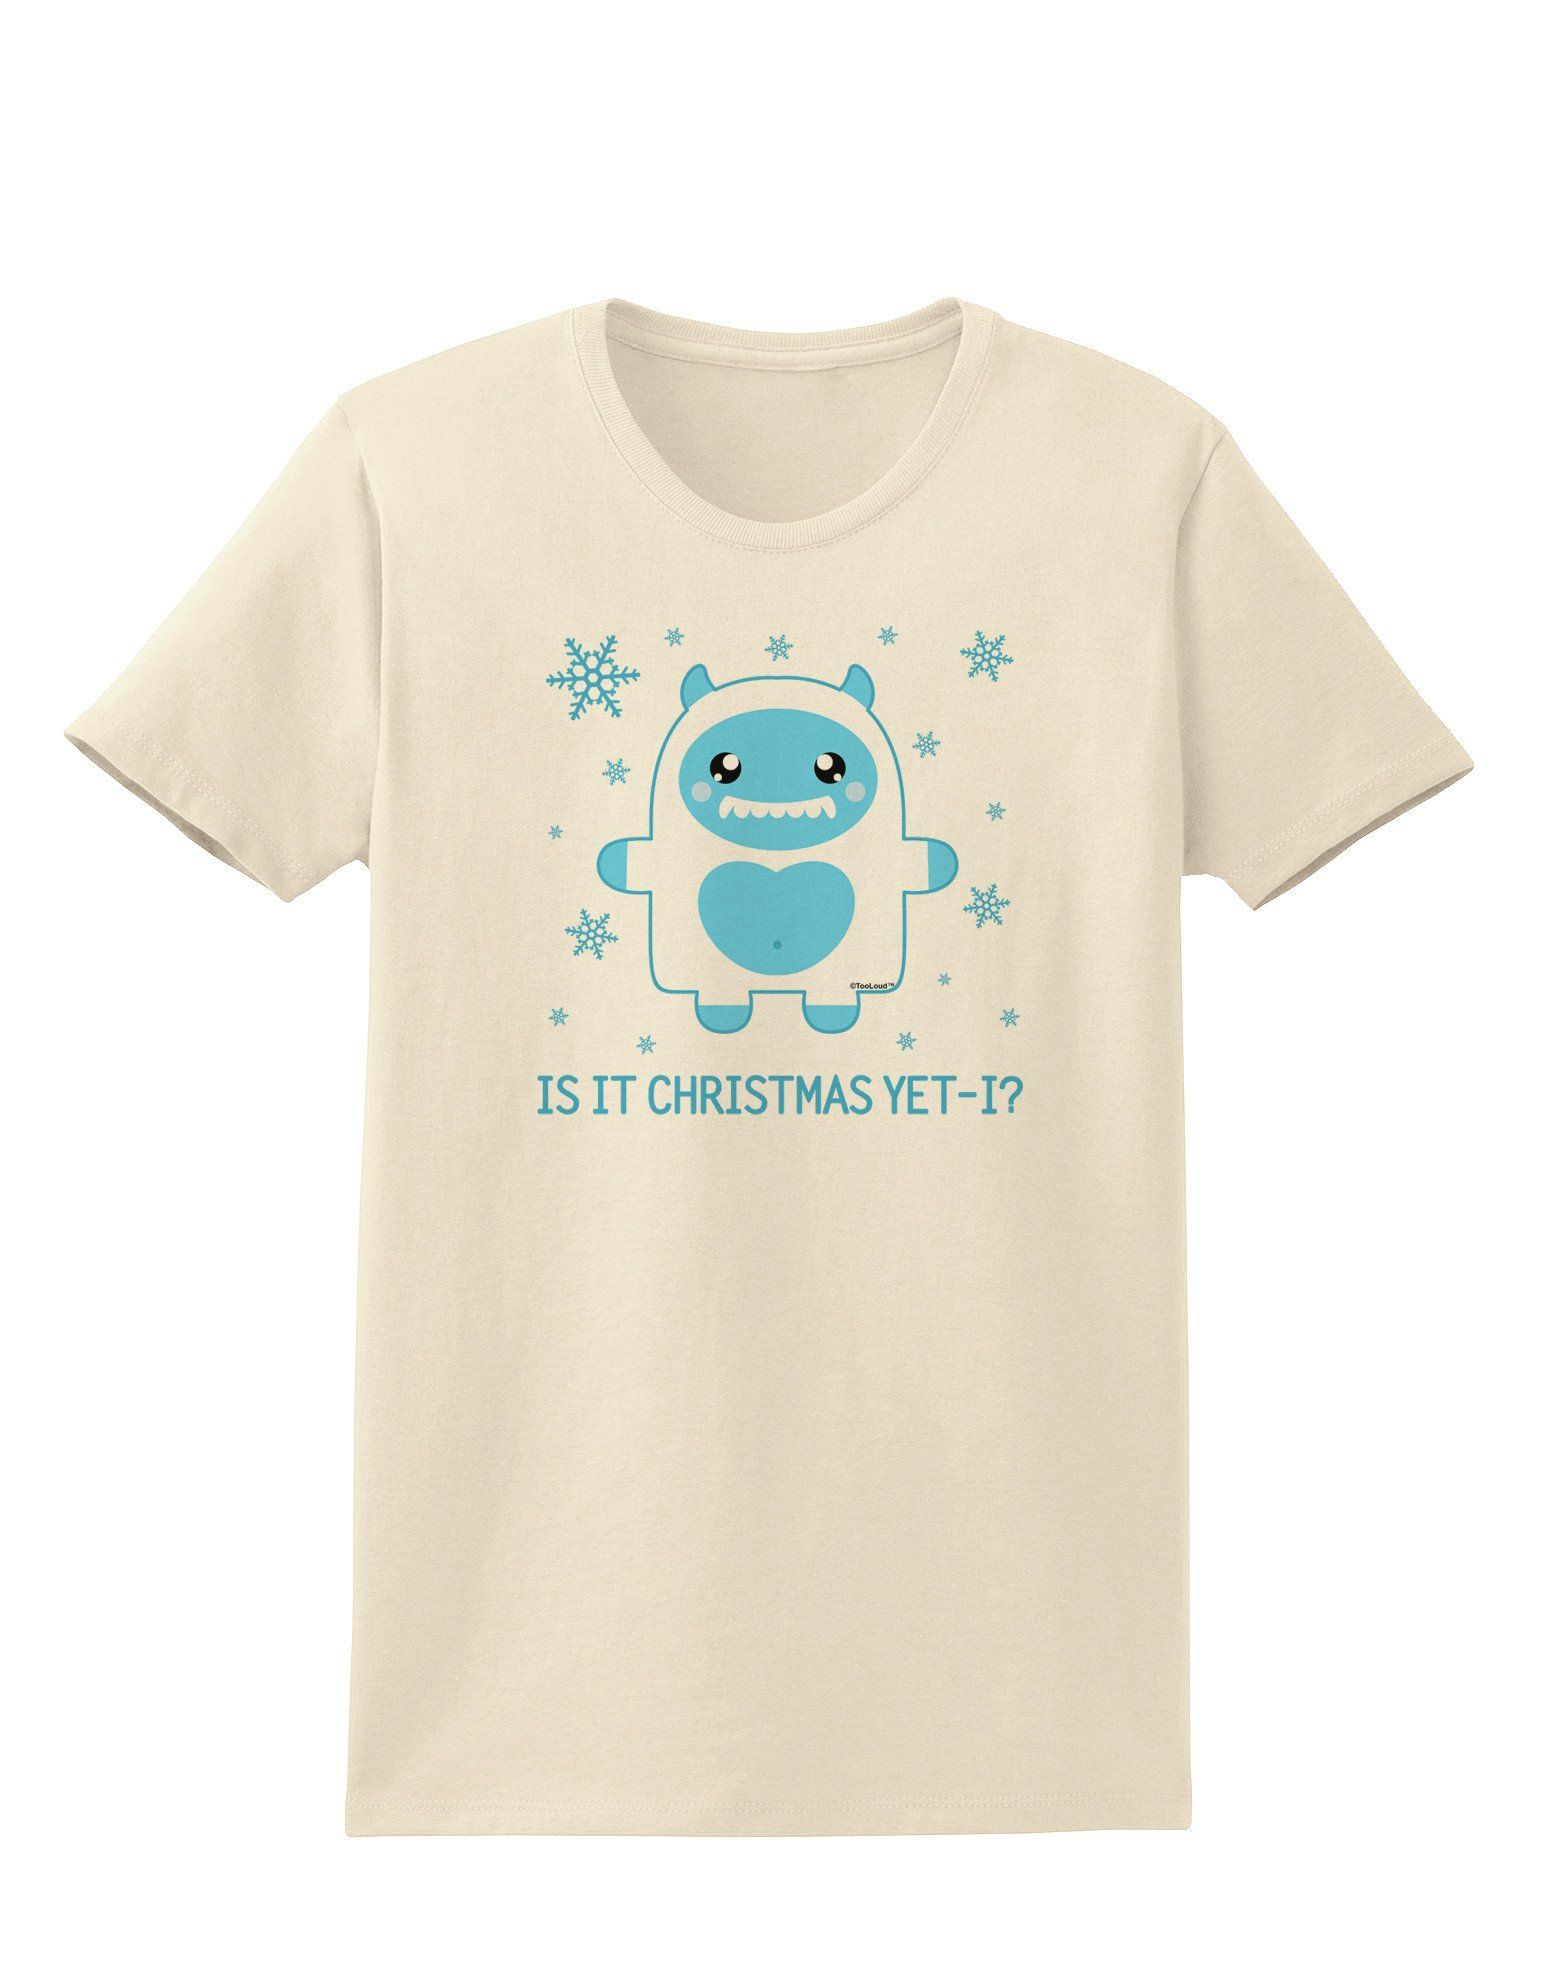 Is It Christmas Yet - Yeti Abominable Snowman Womens T-Shirt | Products